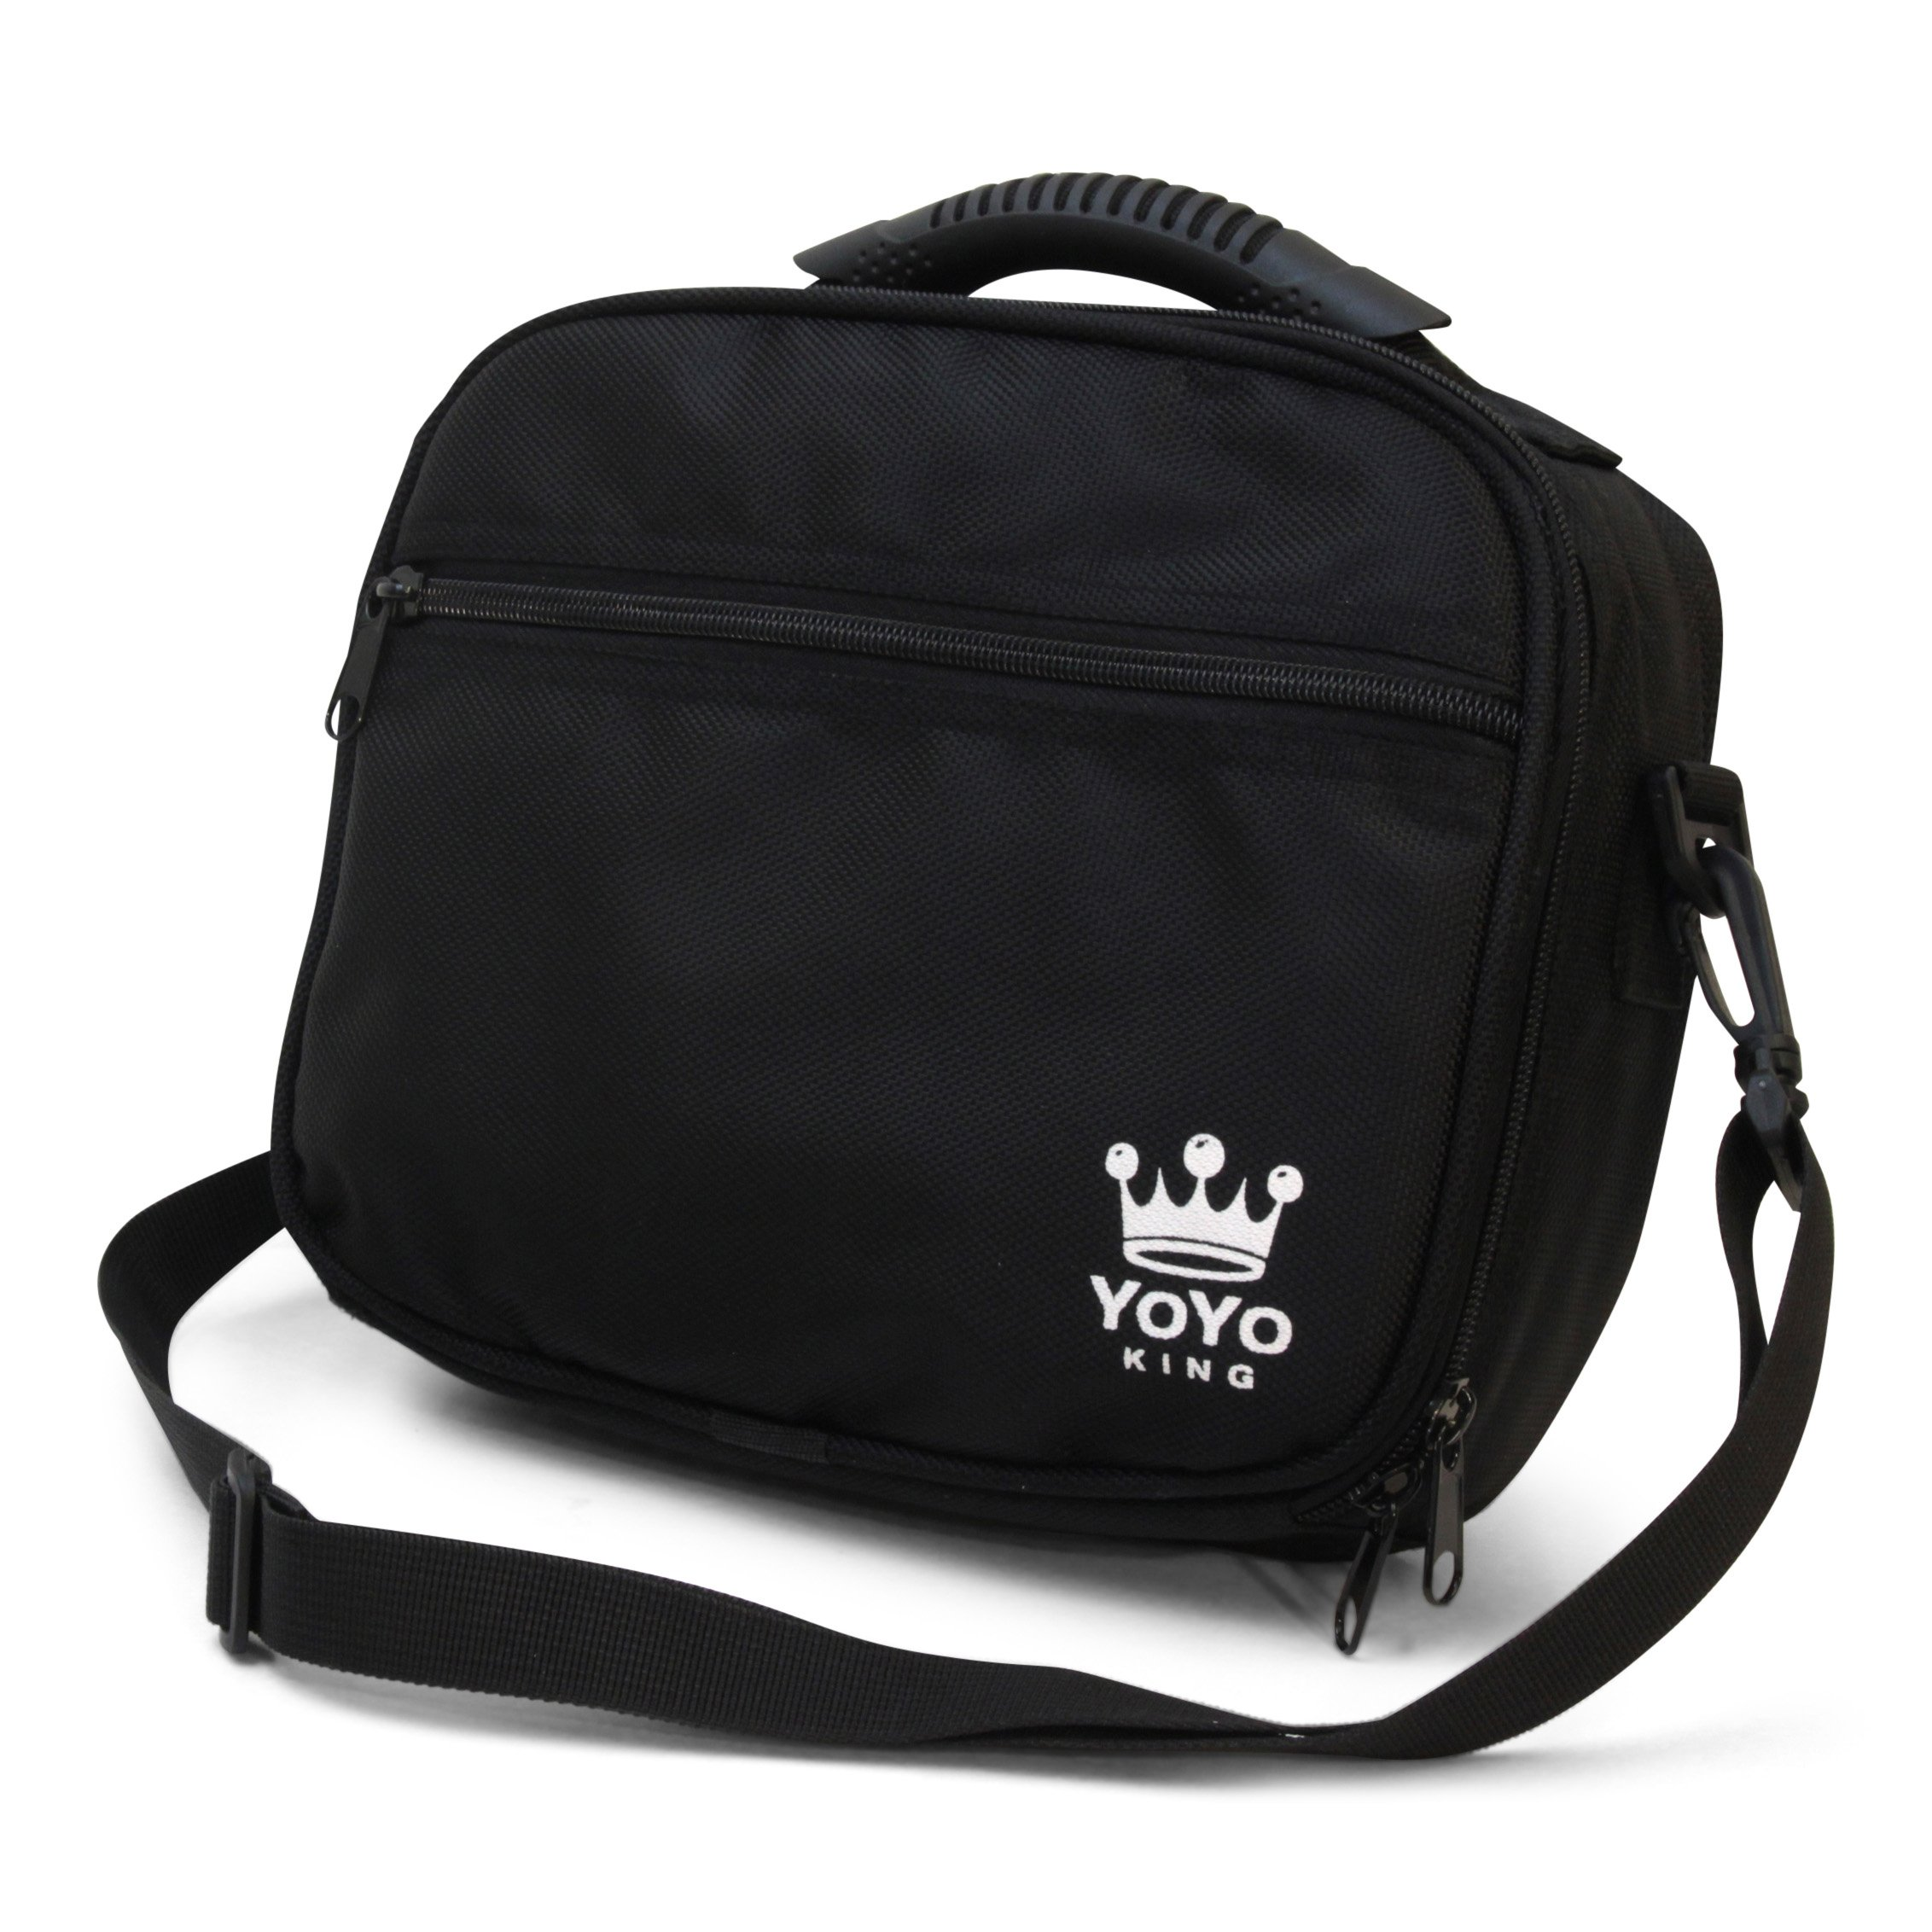 Yoyo King Black Yoyo Bag Heavy Duty Soft Case for Storage of 8 Yoyos and Accessories by Yoyo King